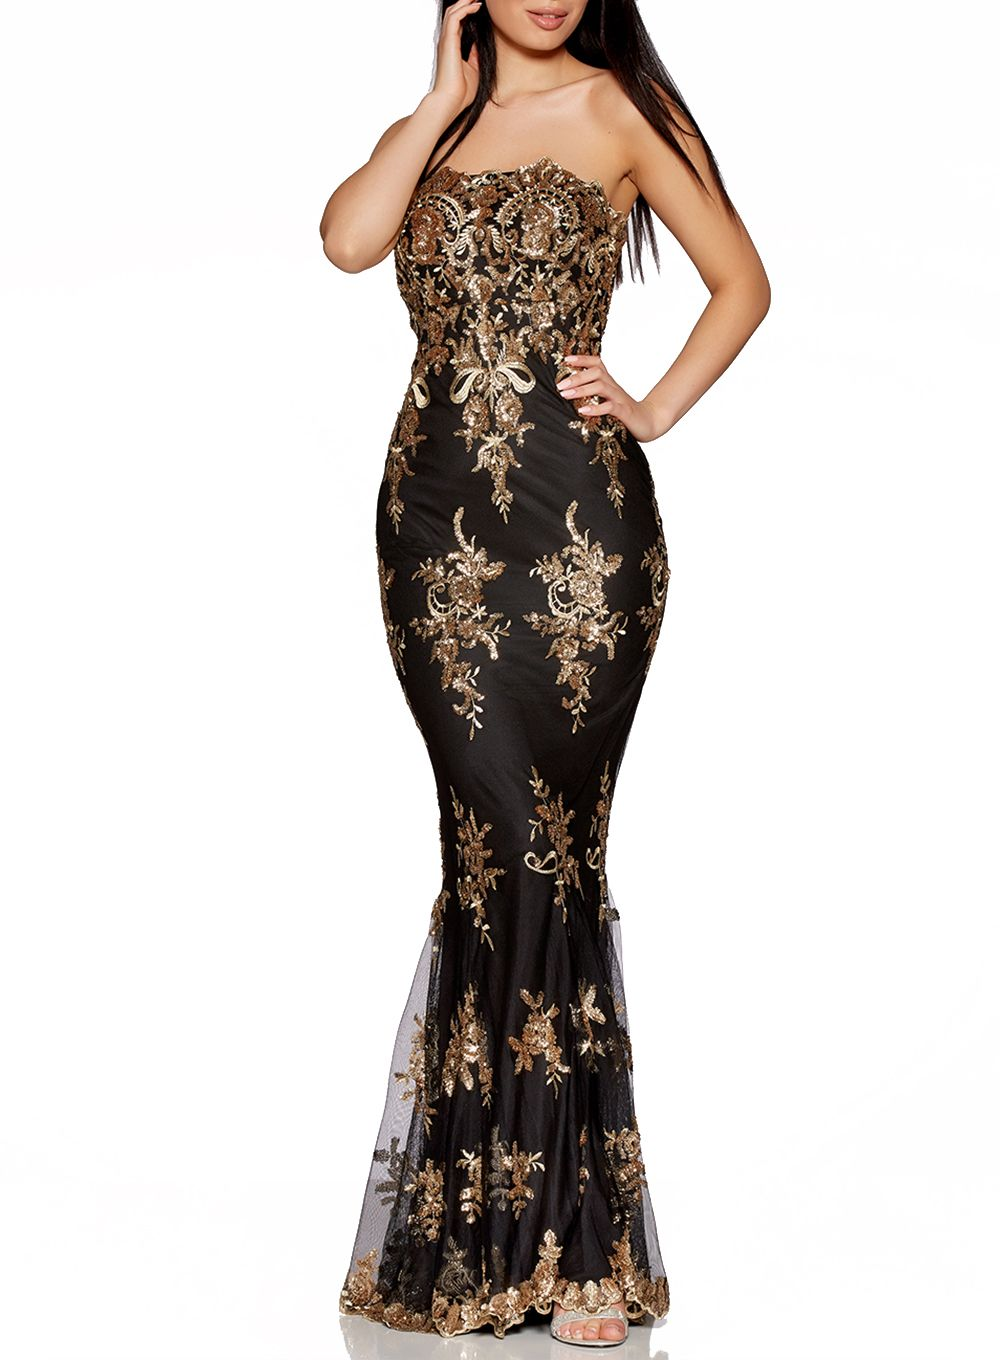 Black and gold dress quiz ur